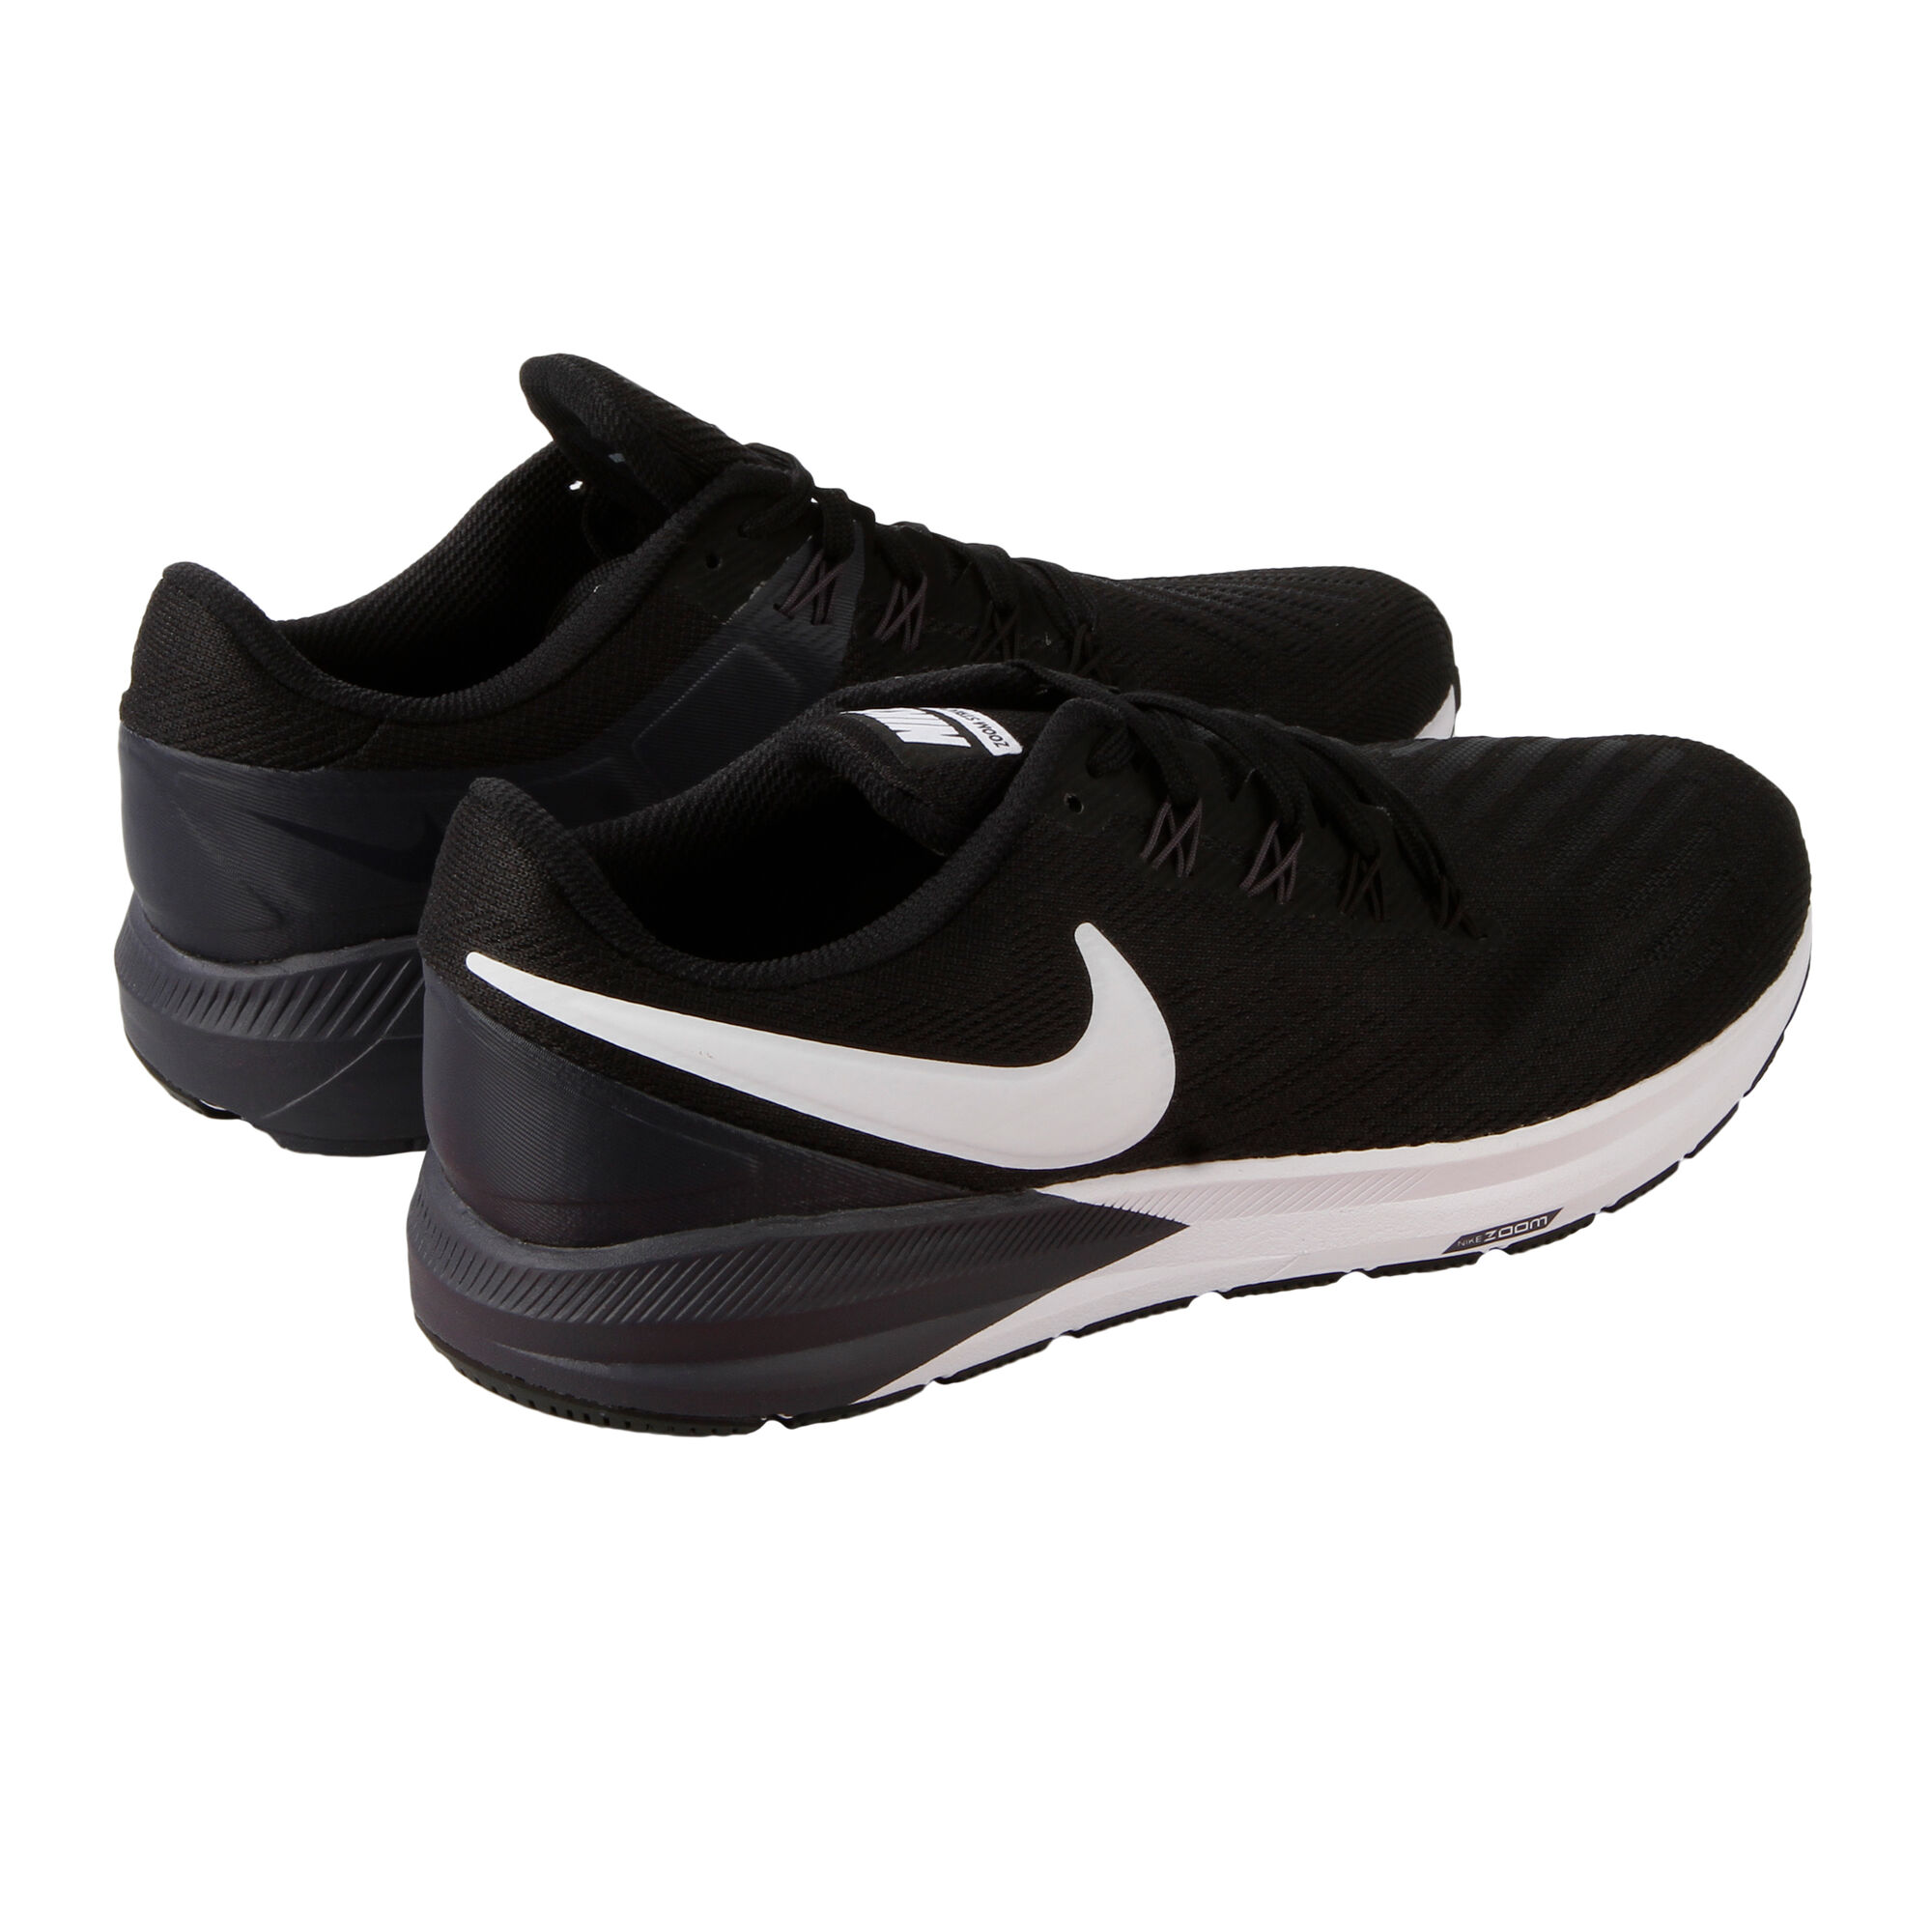 31d451ee494ad8 buy Nike Air Zoom Structure 22 Stability Running Shoe Men - Black ...